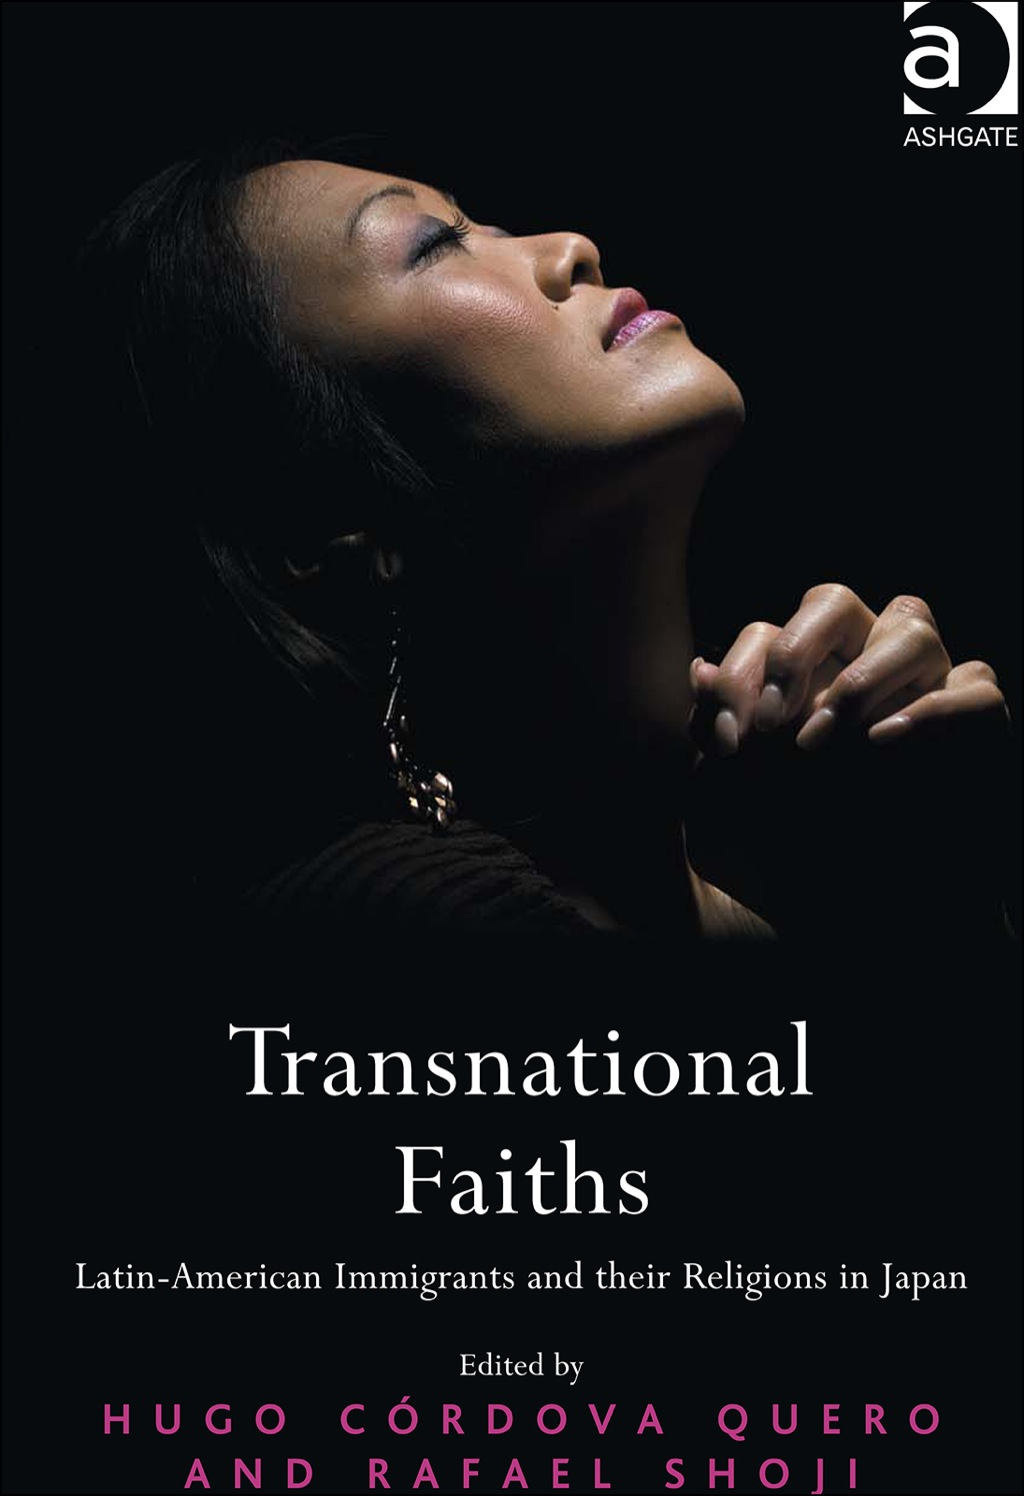 Transnational Faiths: Latin-American Immigrants and their Religions in Japan (eBook Rental)